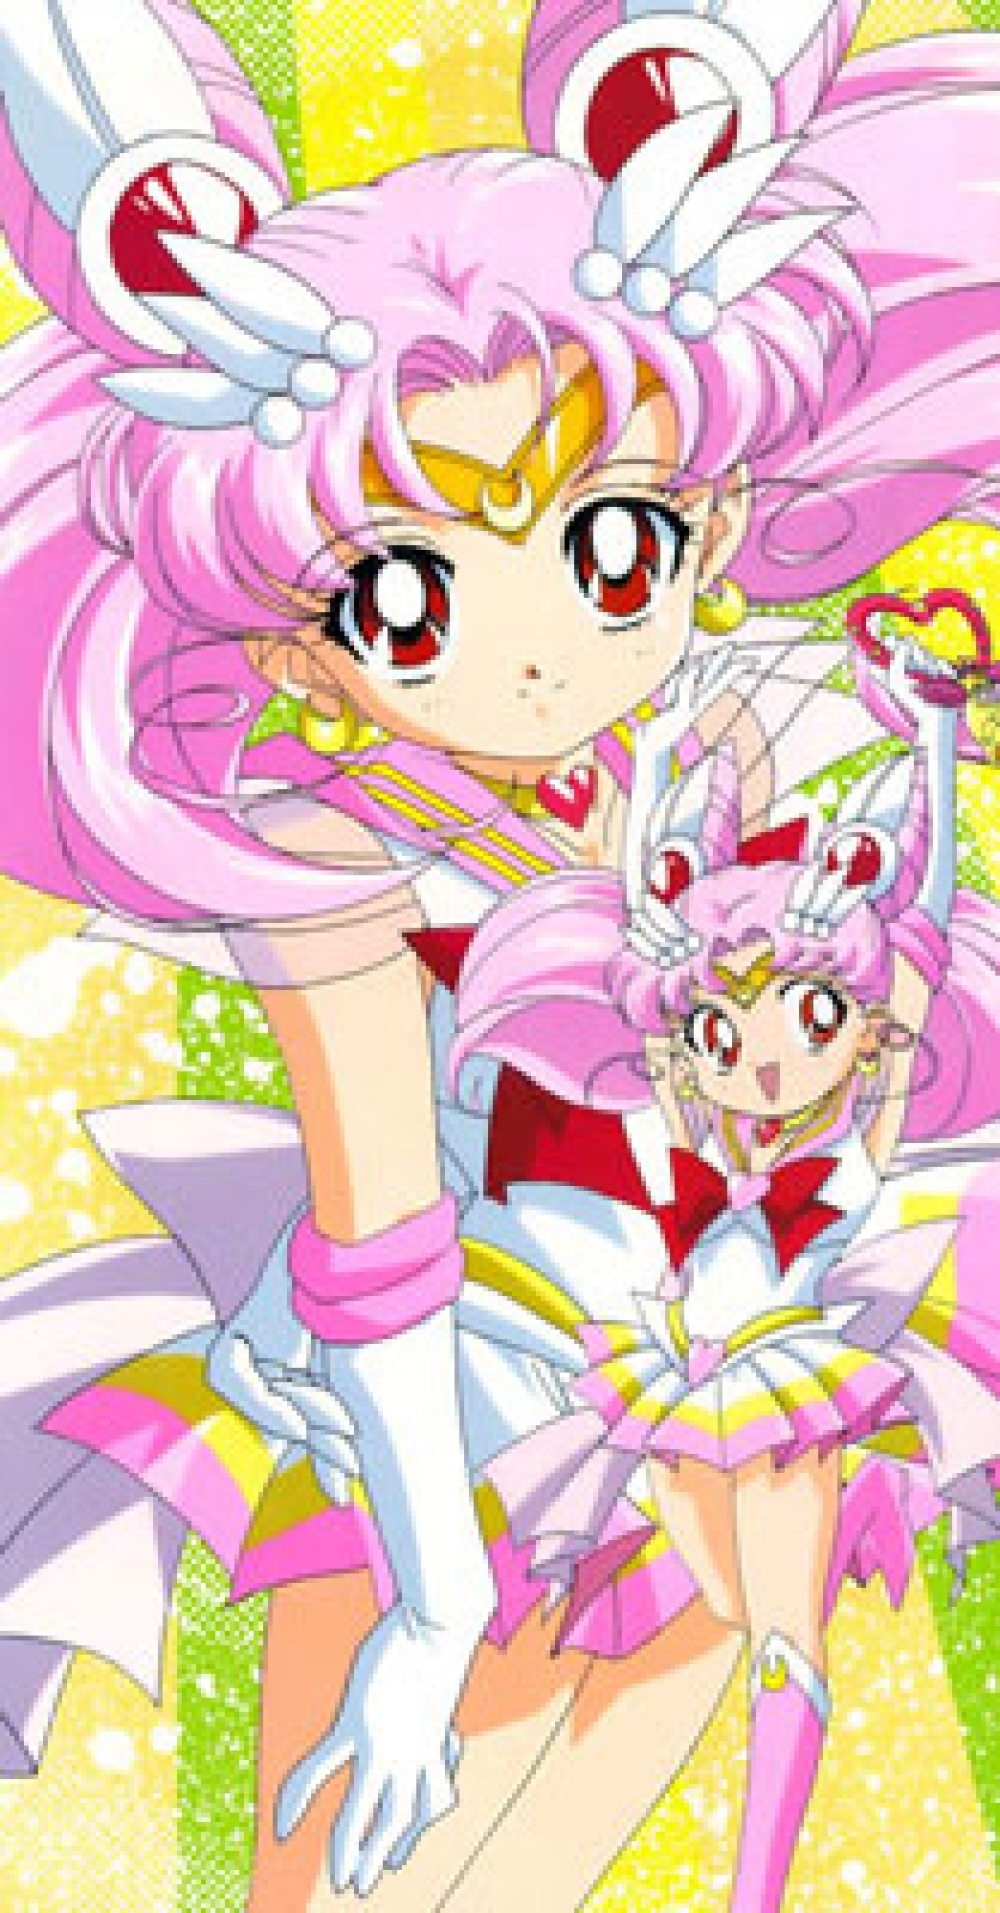 Chibi Moon character